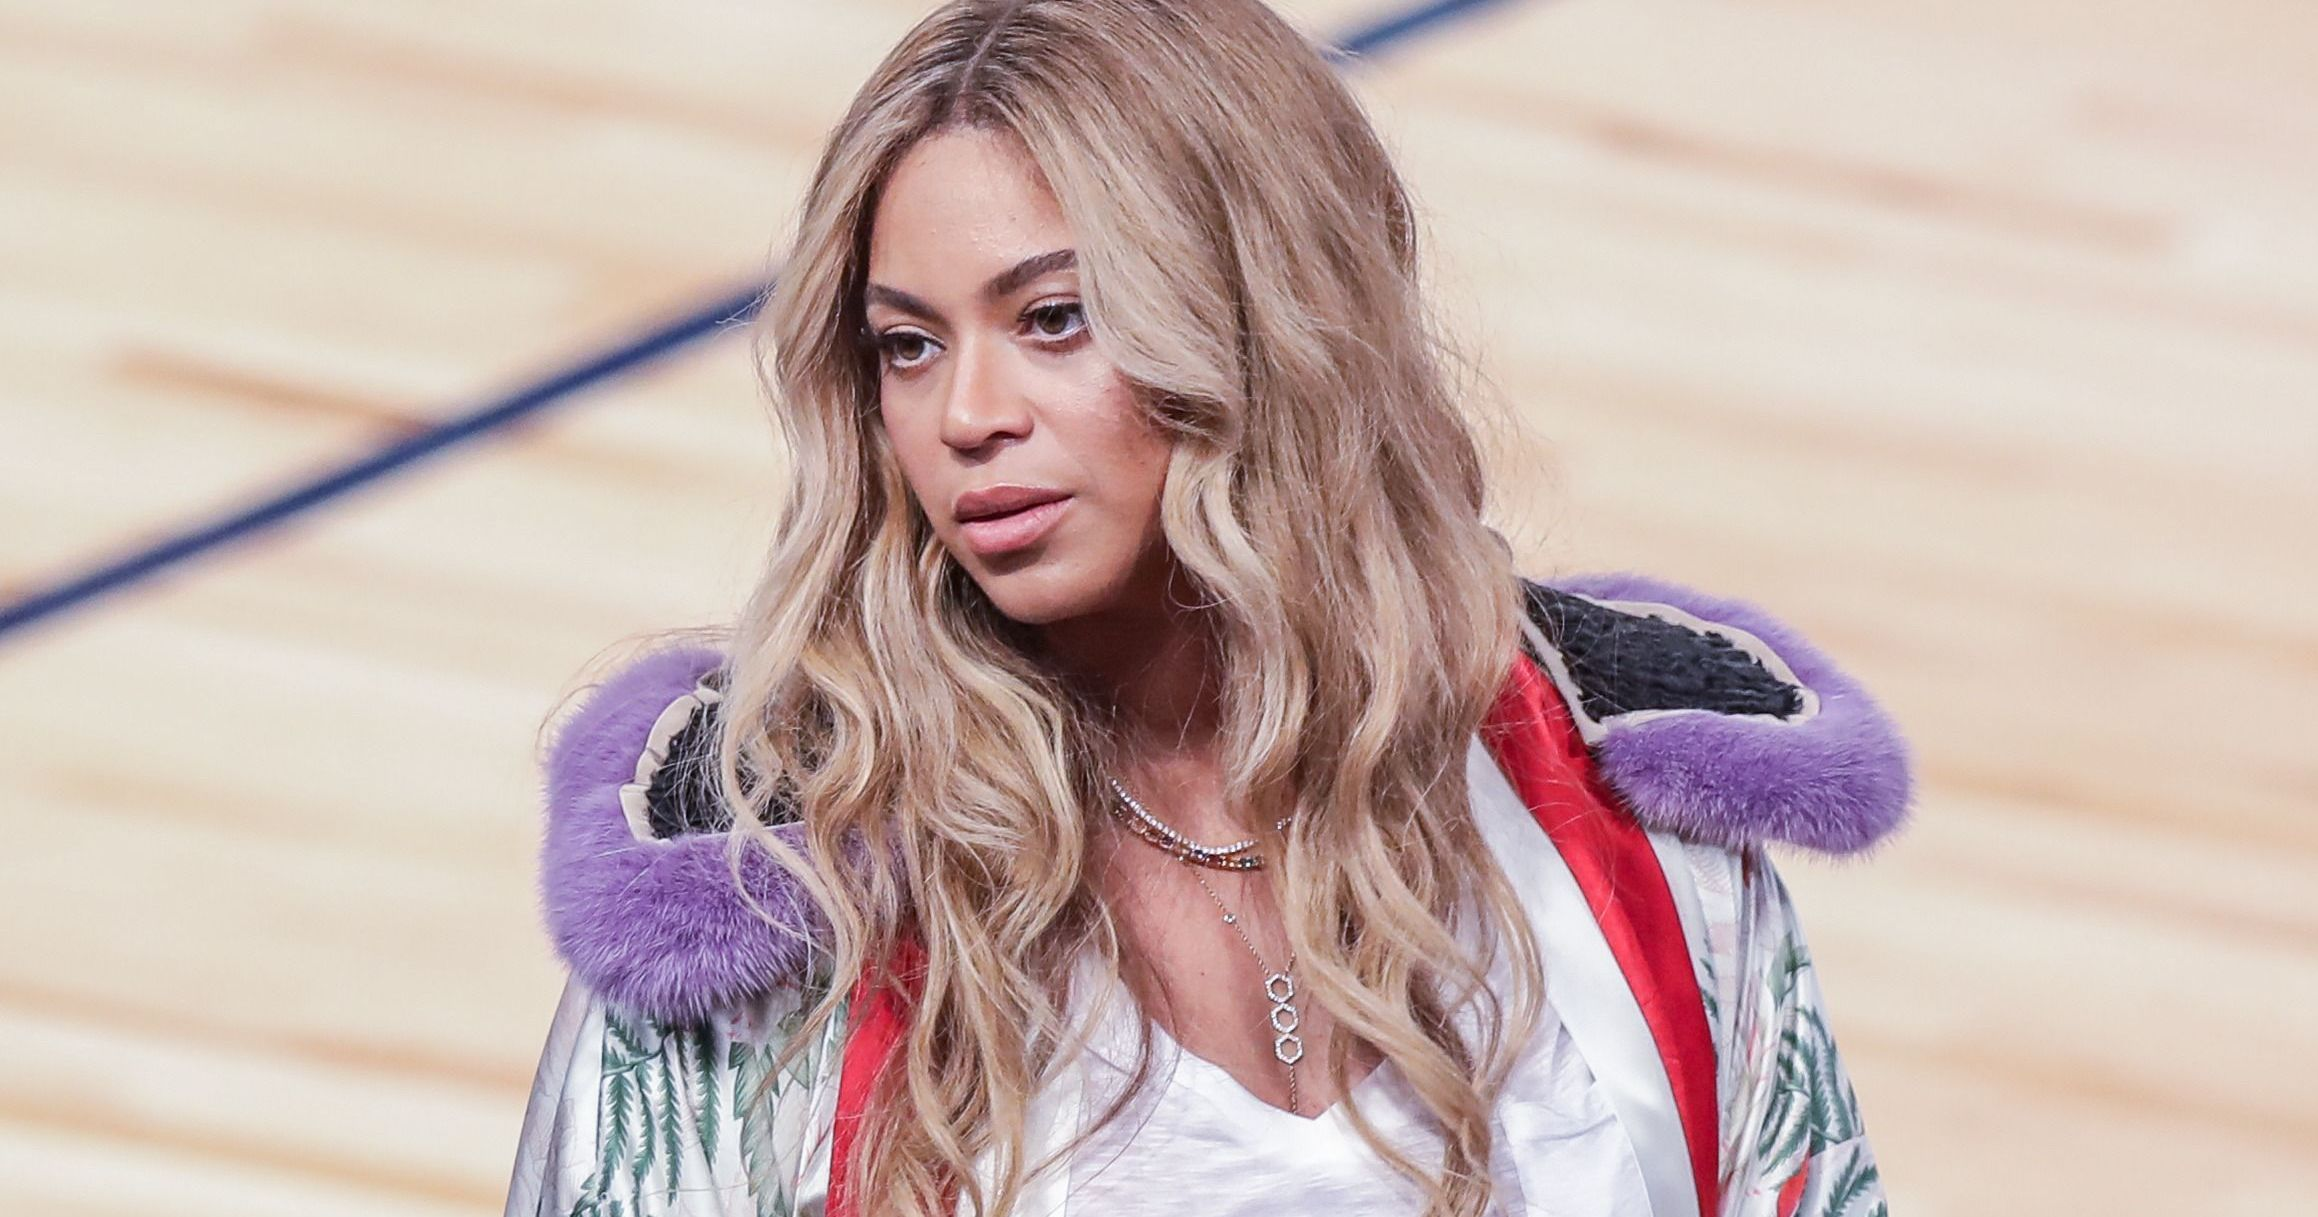 Meches Bambini ~ Jay z raps leave me alone becky while beyonce sings amen in